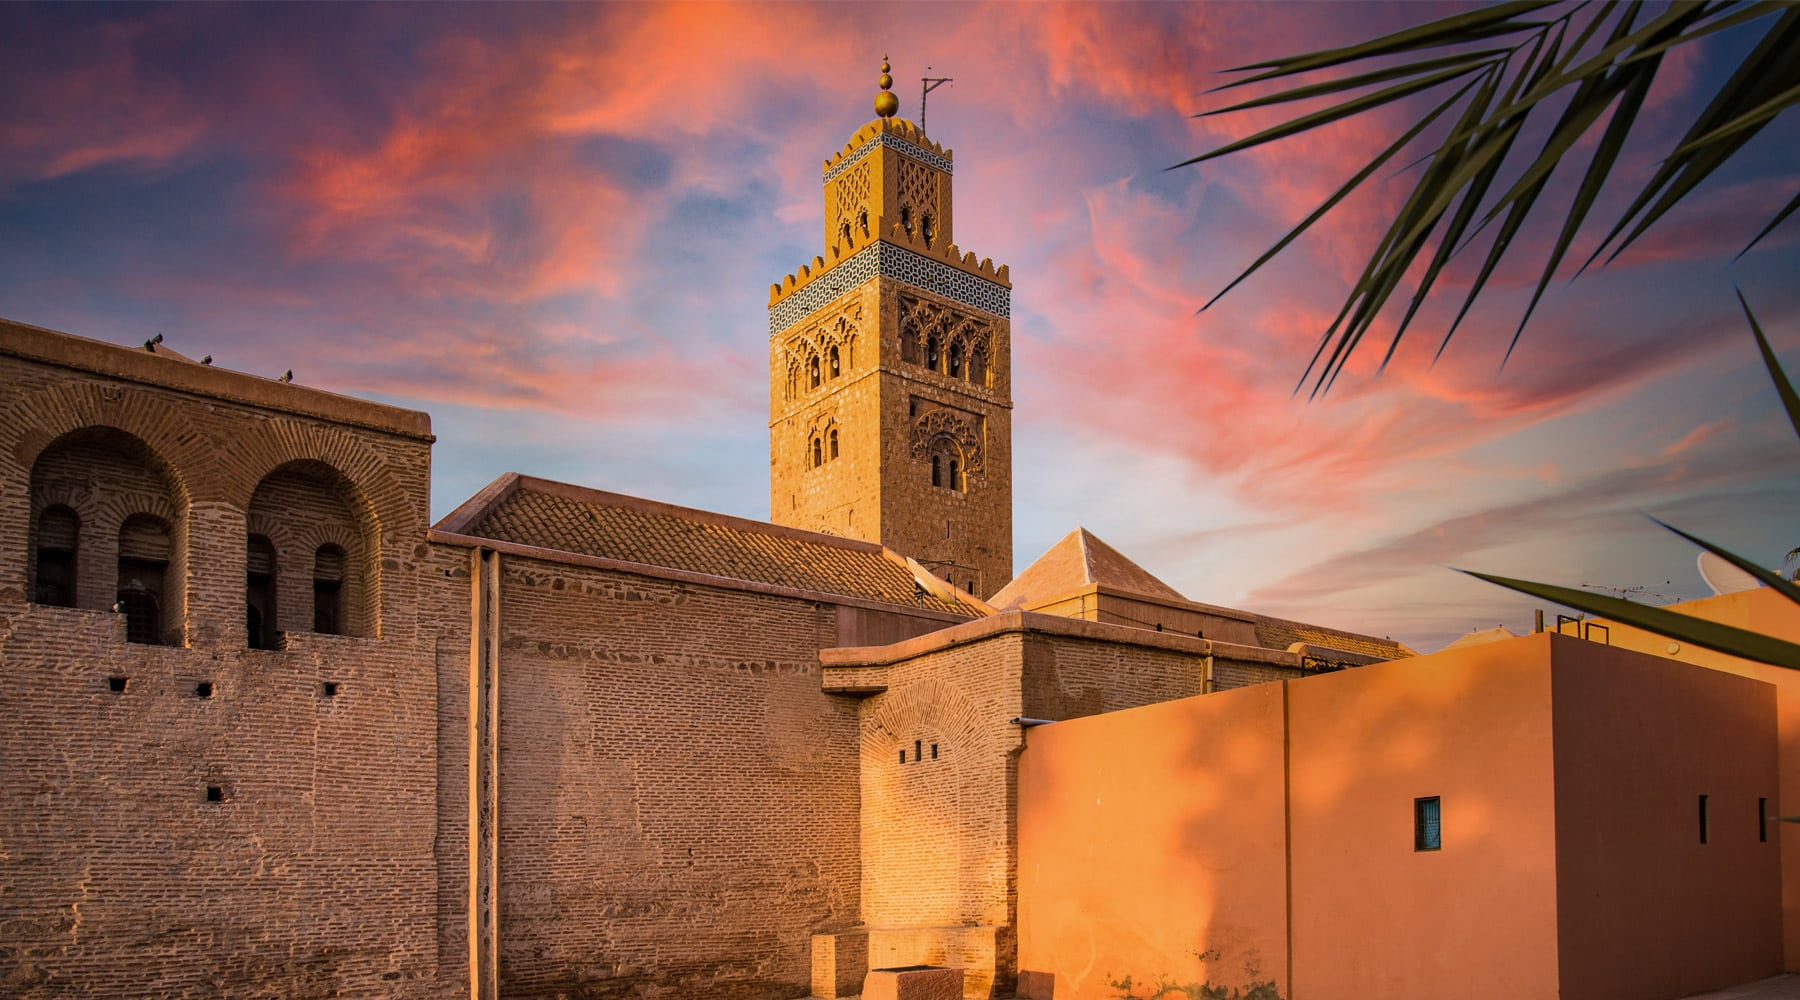 Koutoubia Mosque, Morocco – History & Architecture